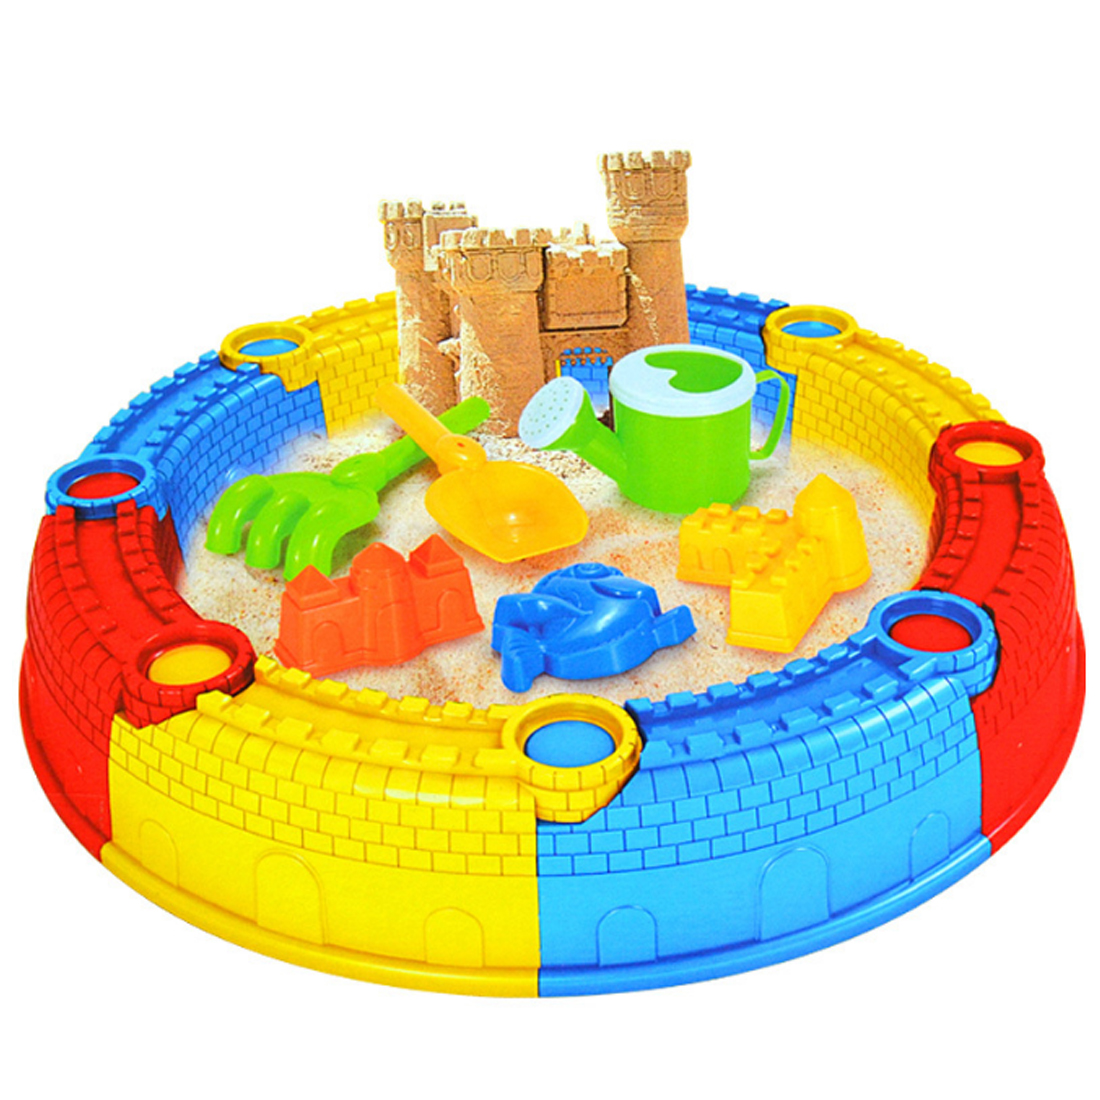 Surwish Children Beach Sand Toys Sand Castle Set for Training Kids Operational Ability Outdoor Fun sand mold set